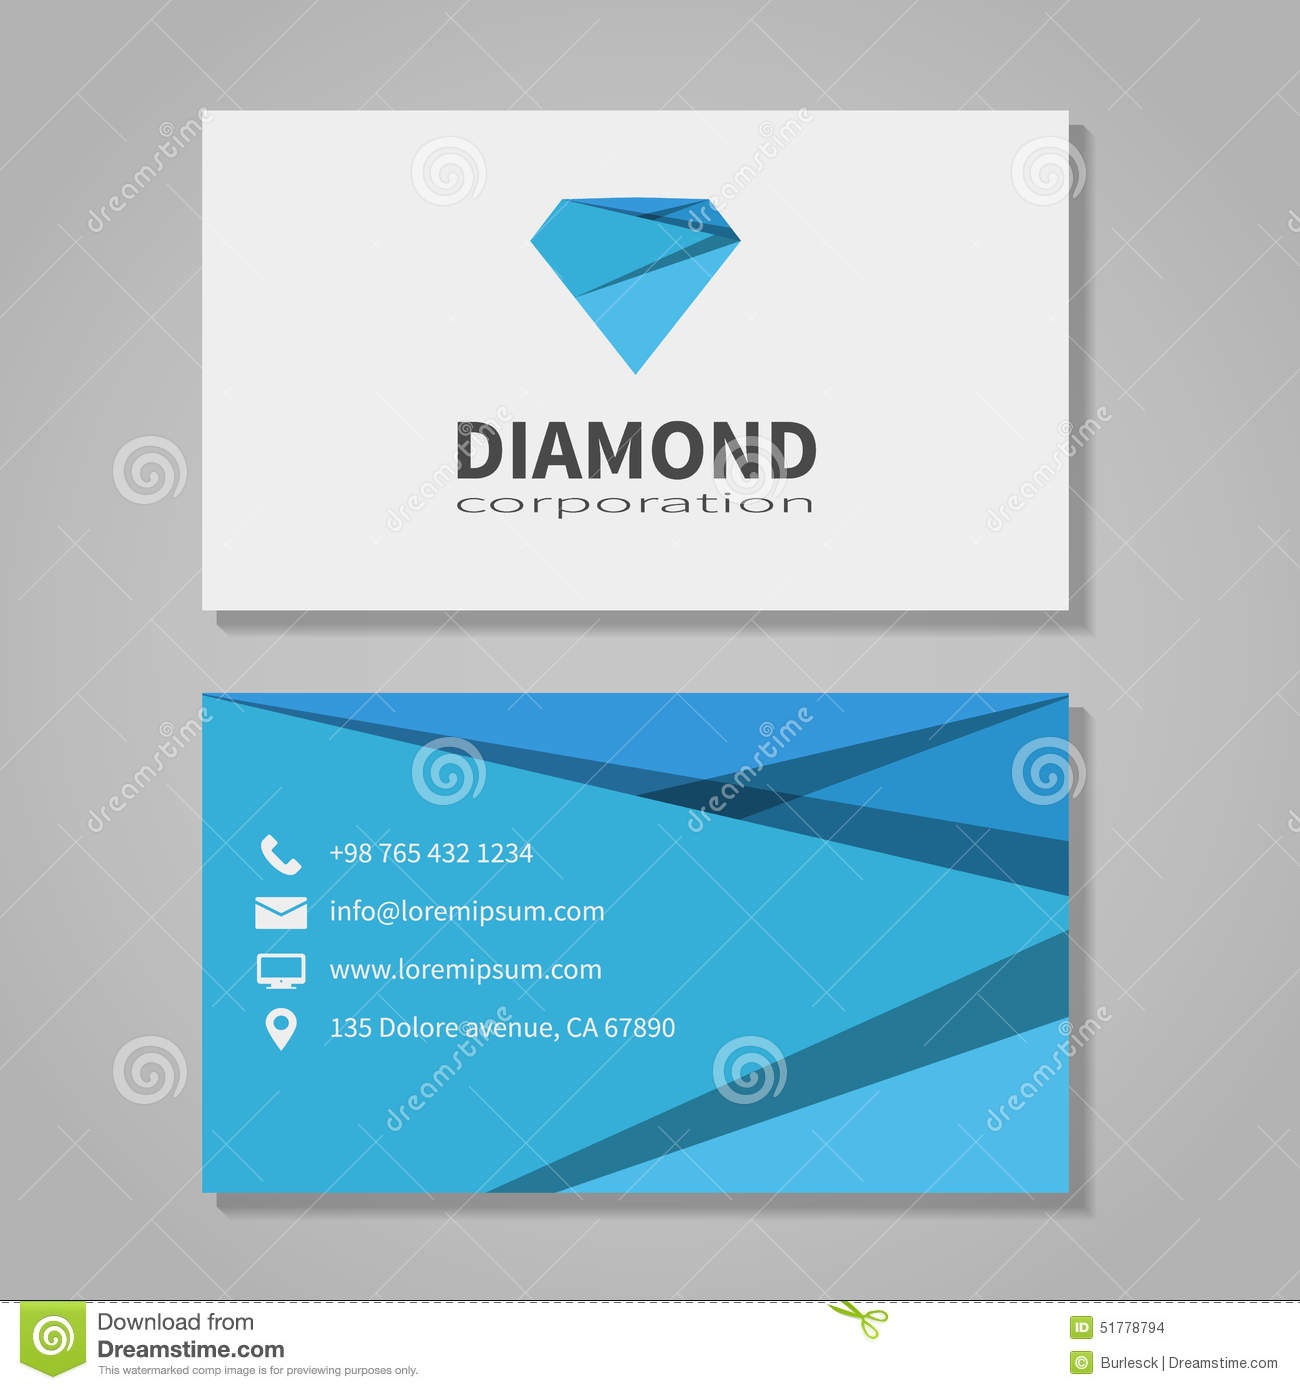 Diamond Corporation Business Card Template Stock Vector - Image ...